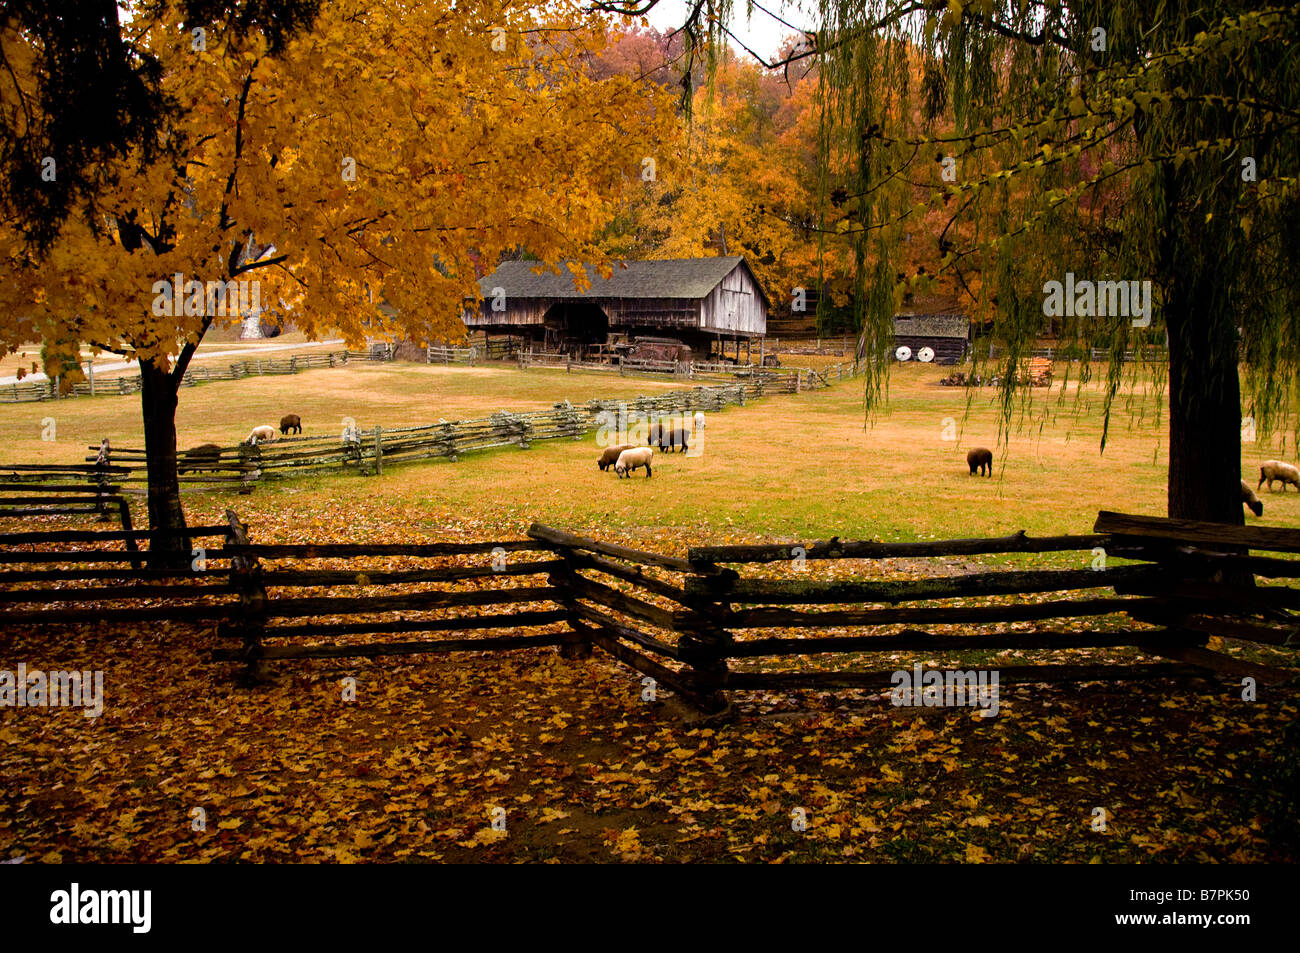 Museum of Appalachia Norris Tennessee - Stock Image